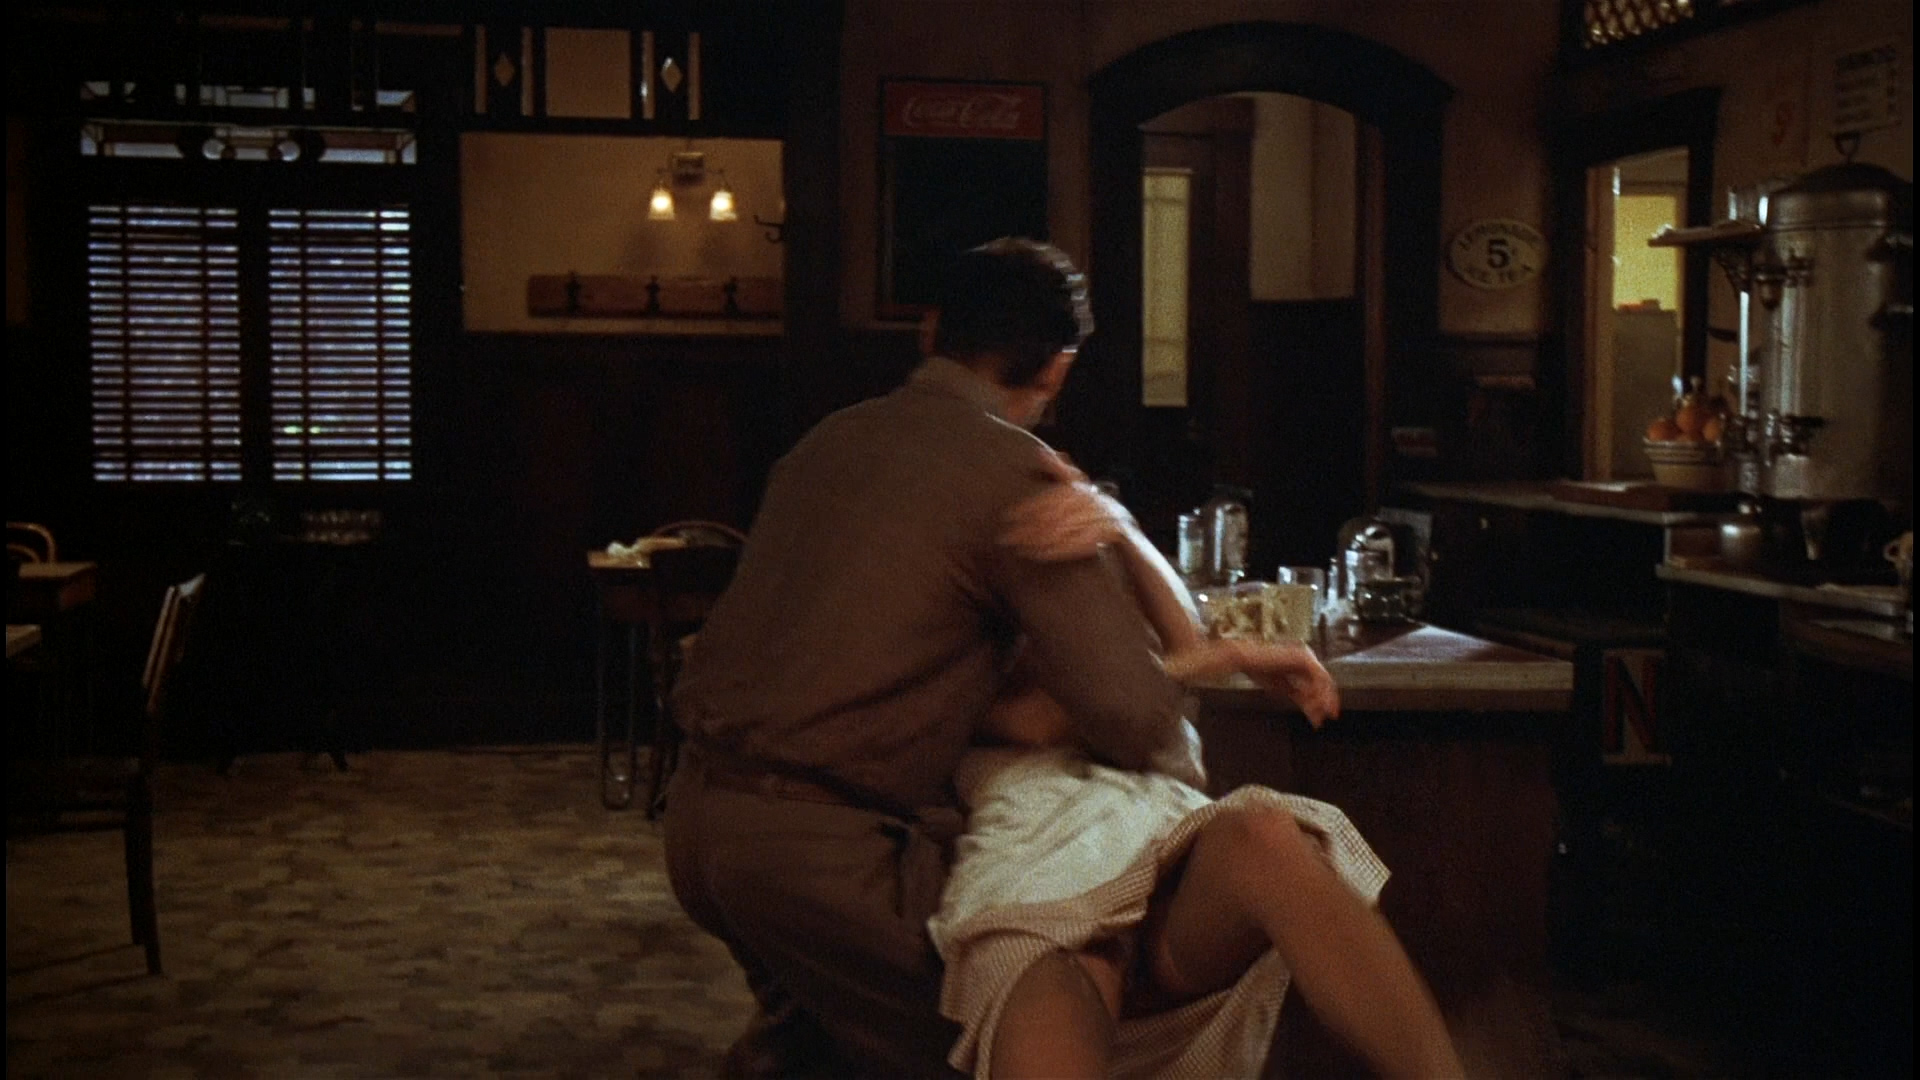 Jessica lange nude pictures-7297